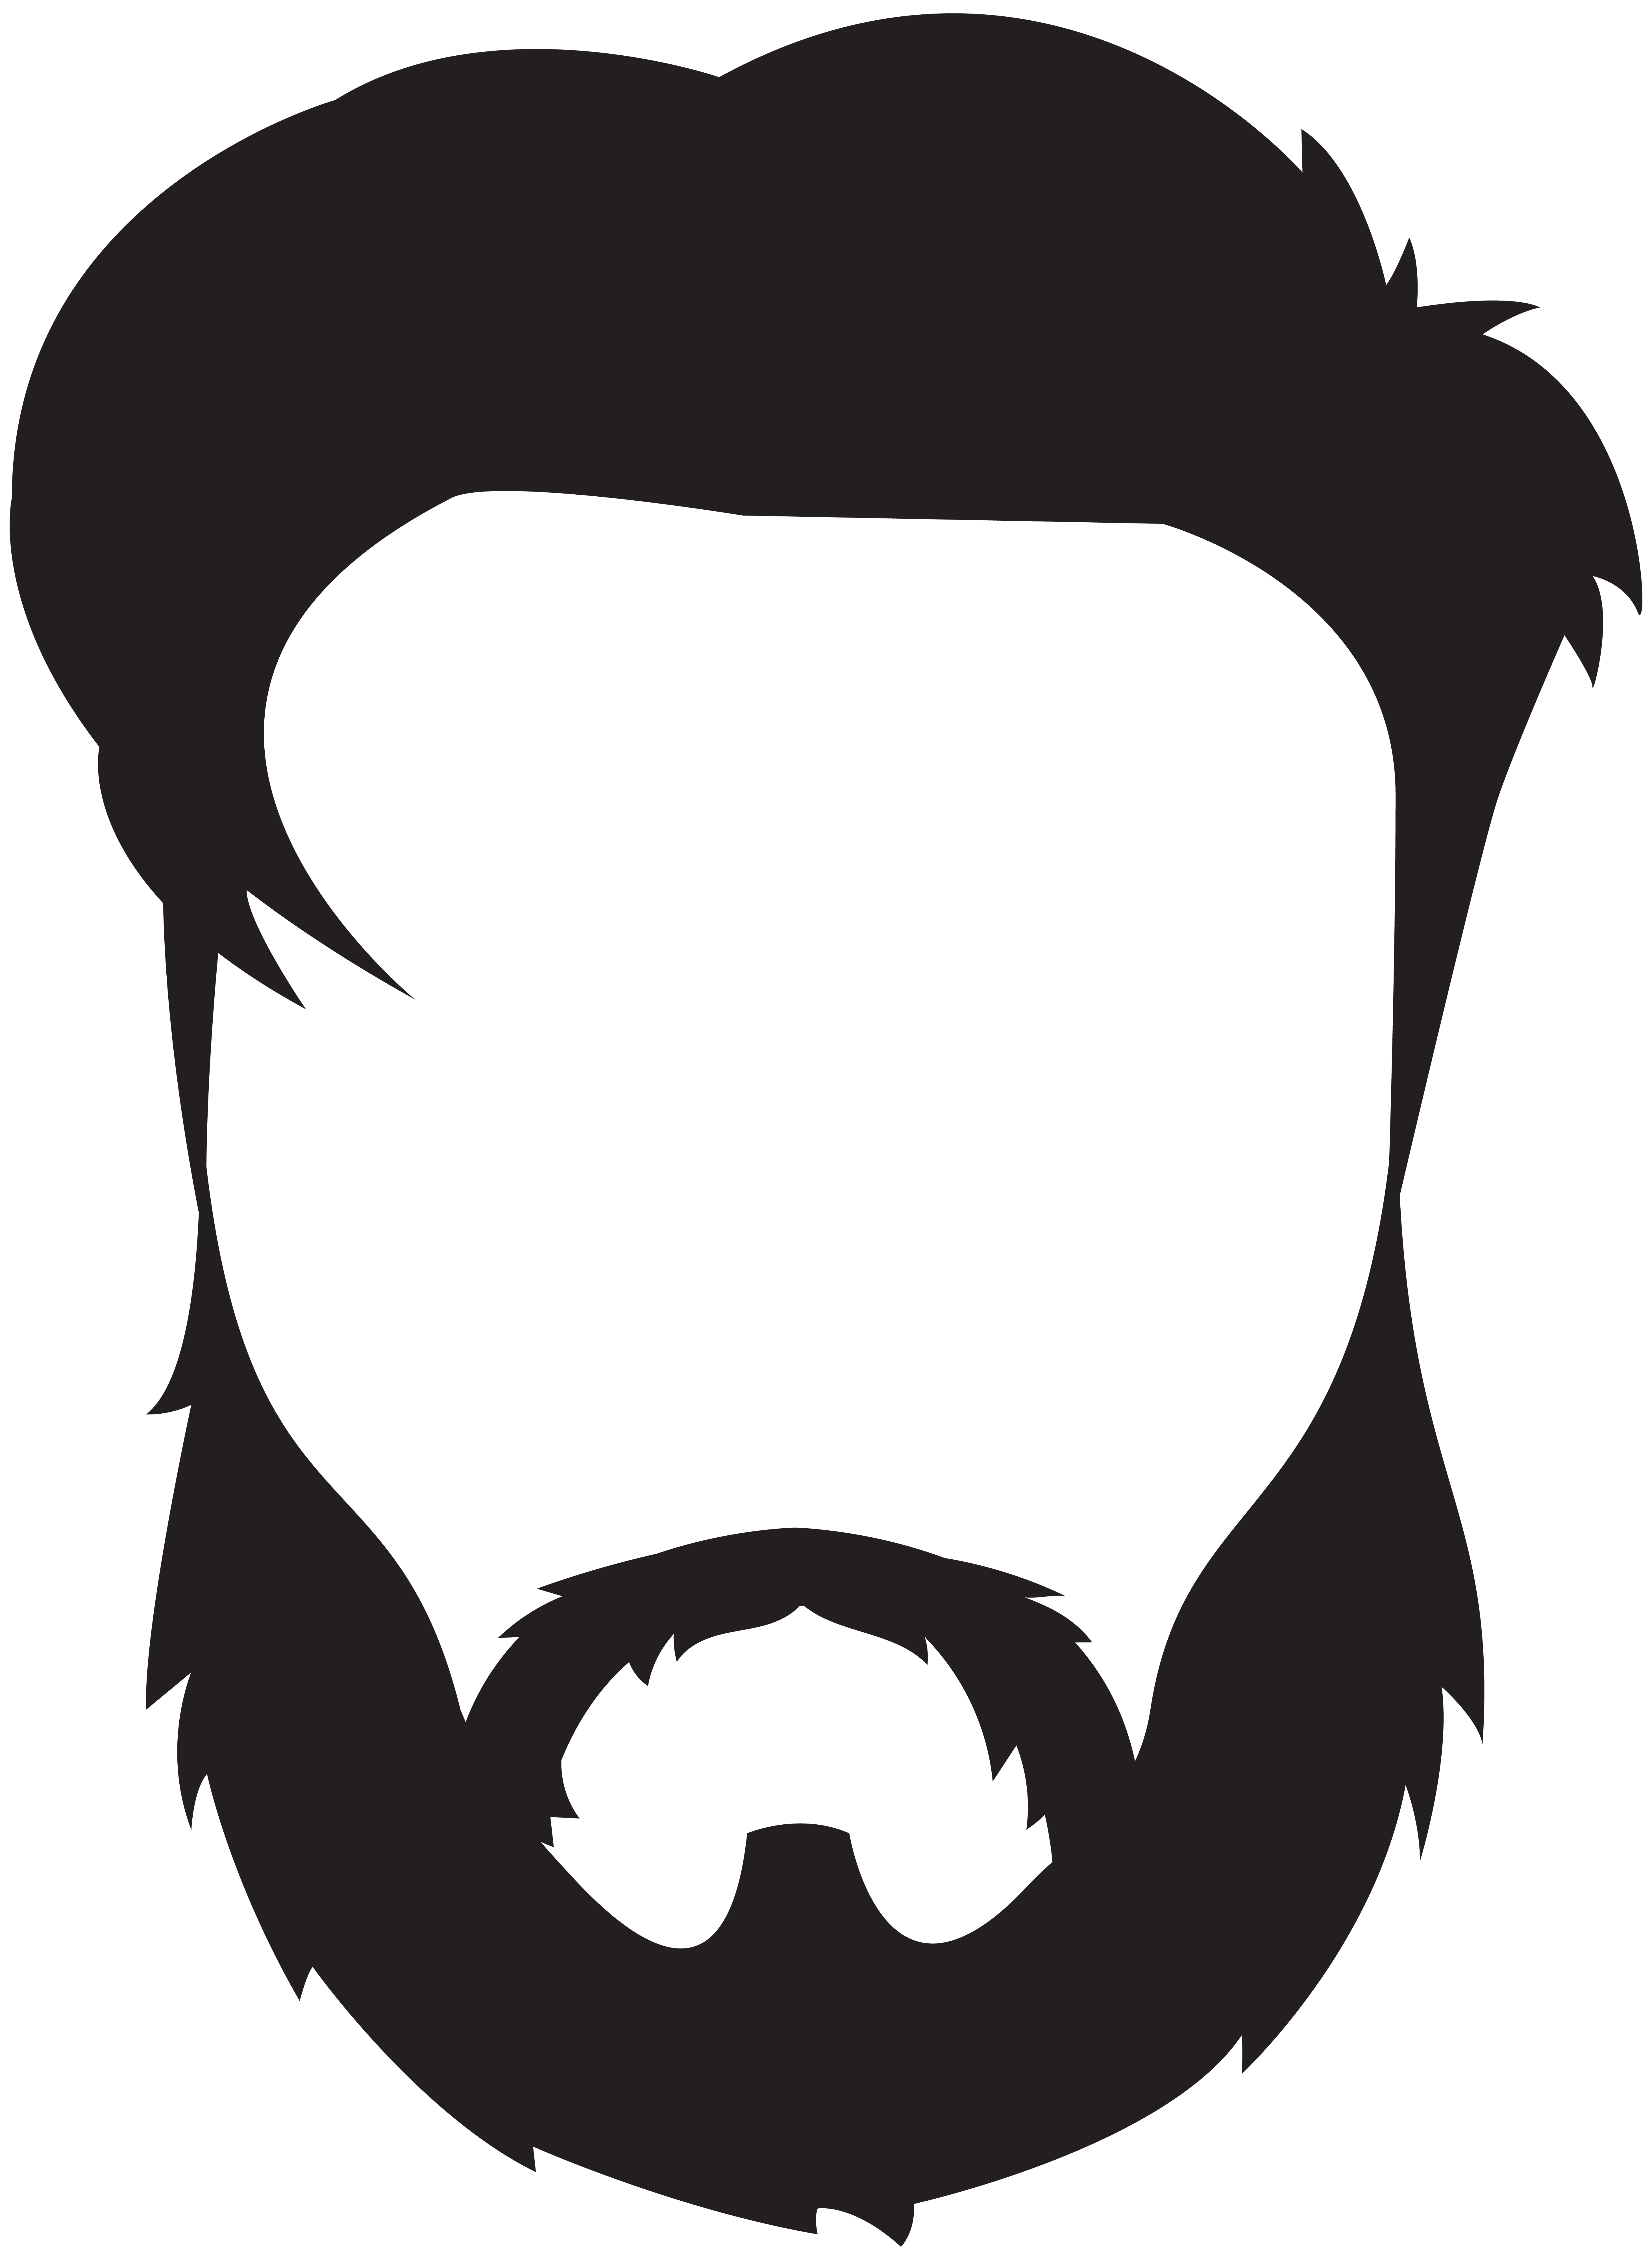 clip royalty free library Man hair mustache png. Beard clipart